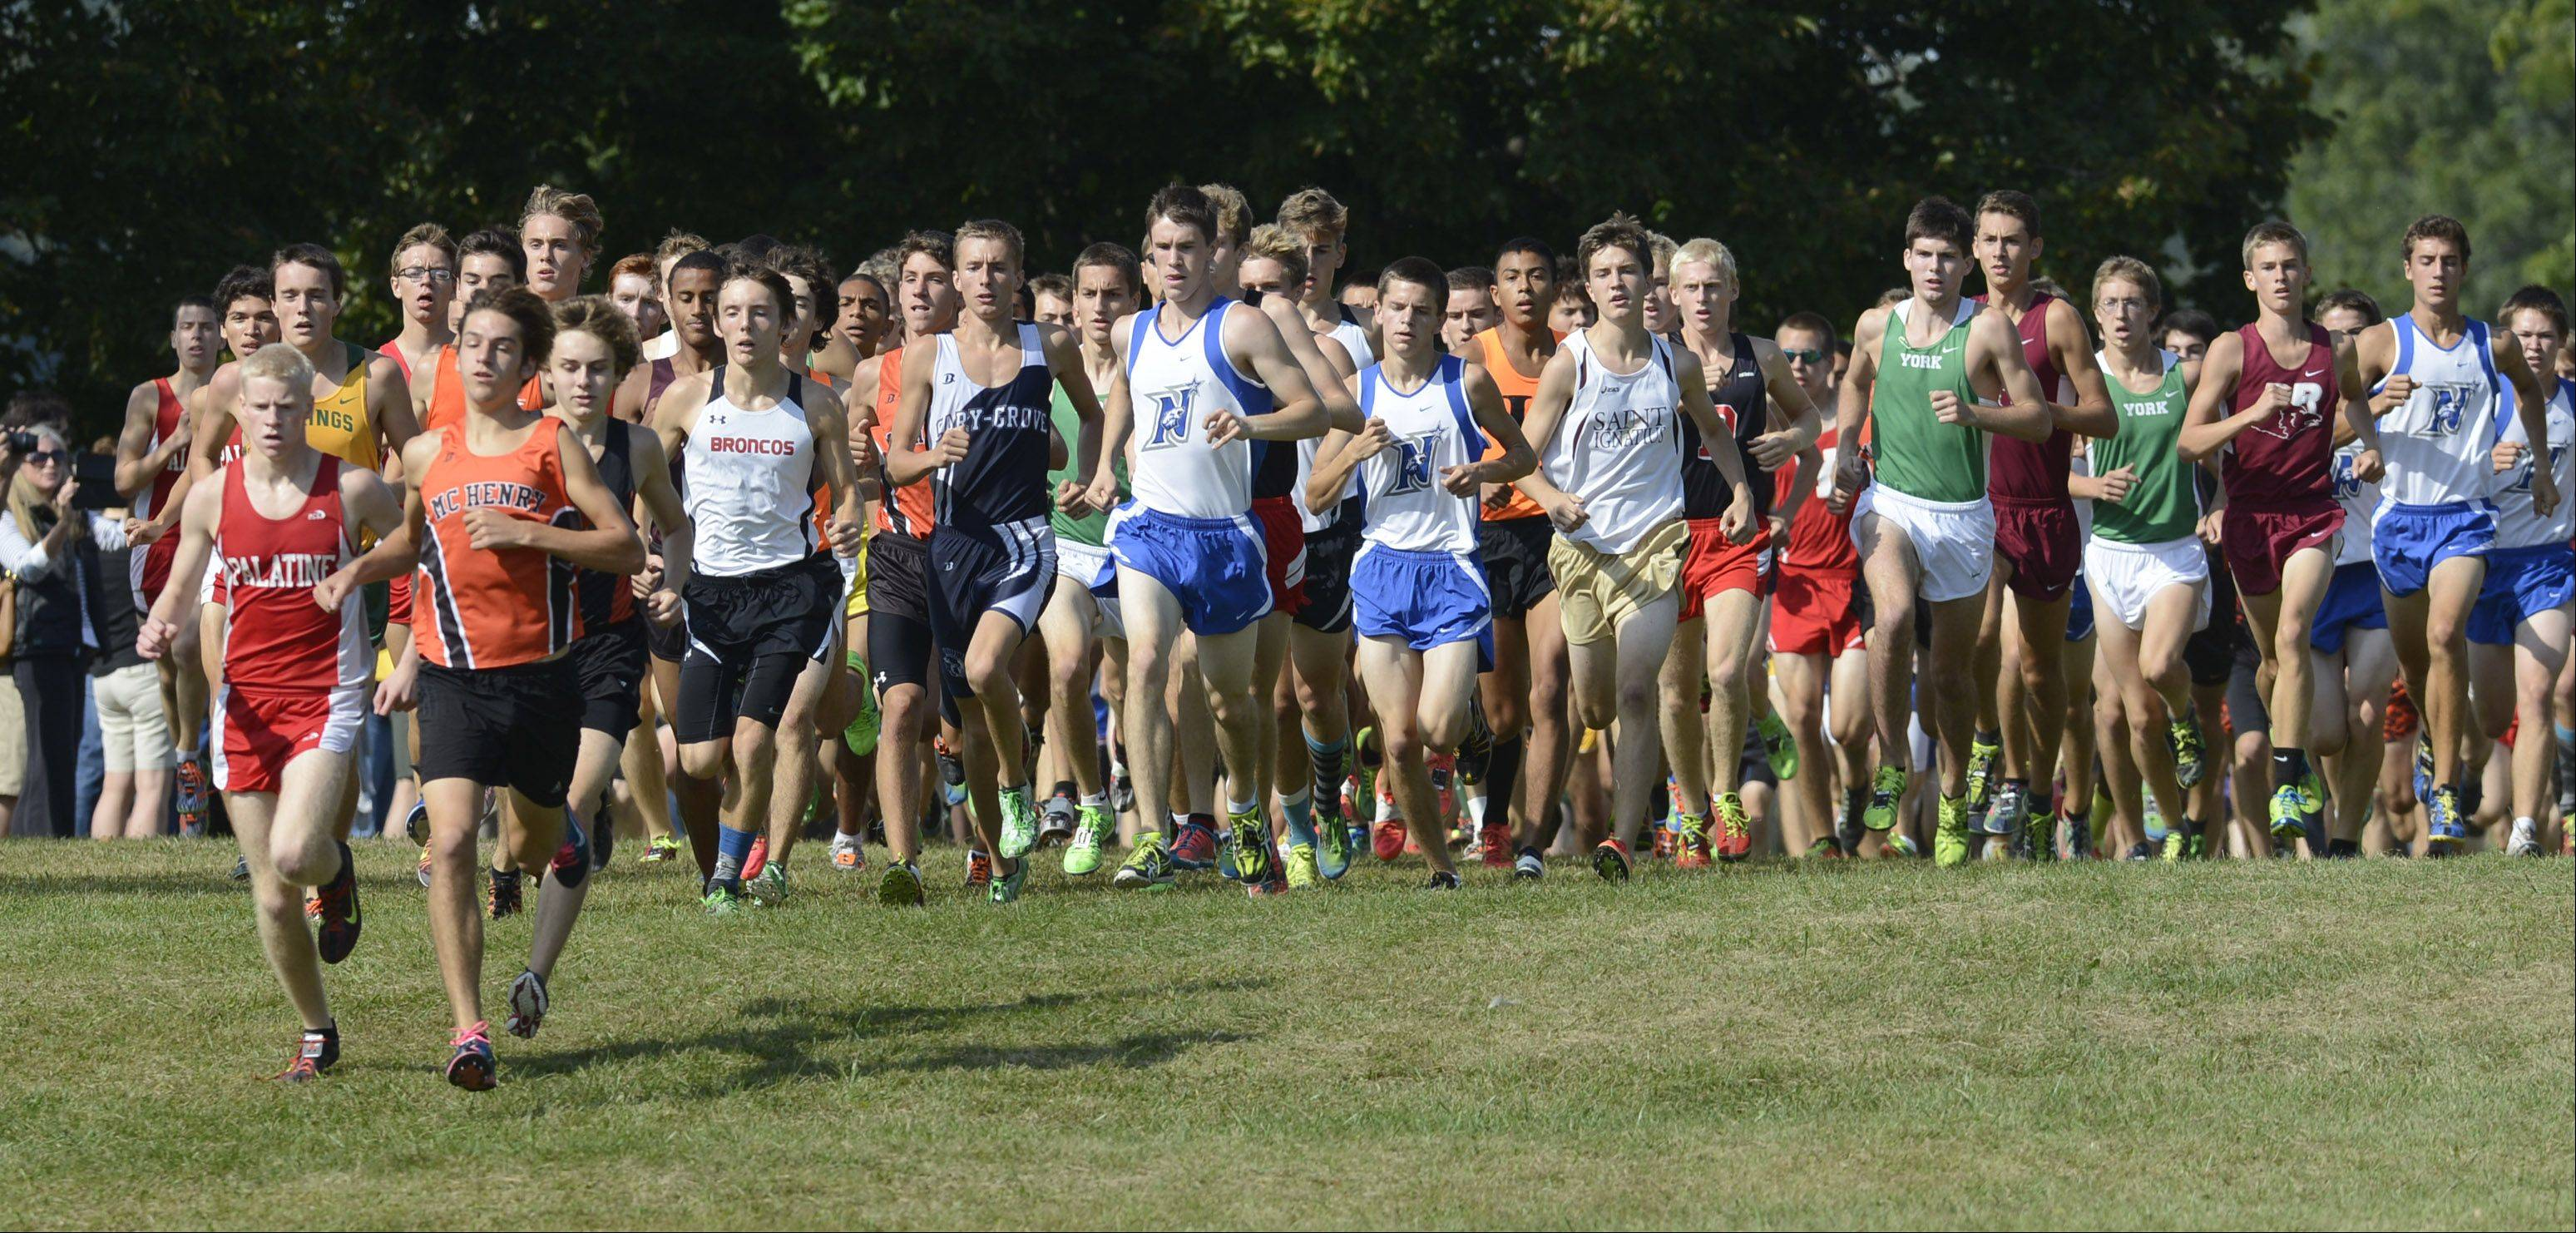 Competitors in the boys race top a small hill just after the start during the Palatine Invitational at Deer Grove East on Saturday.